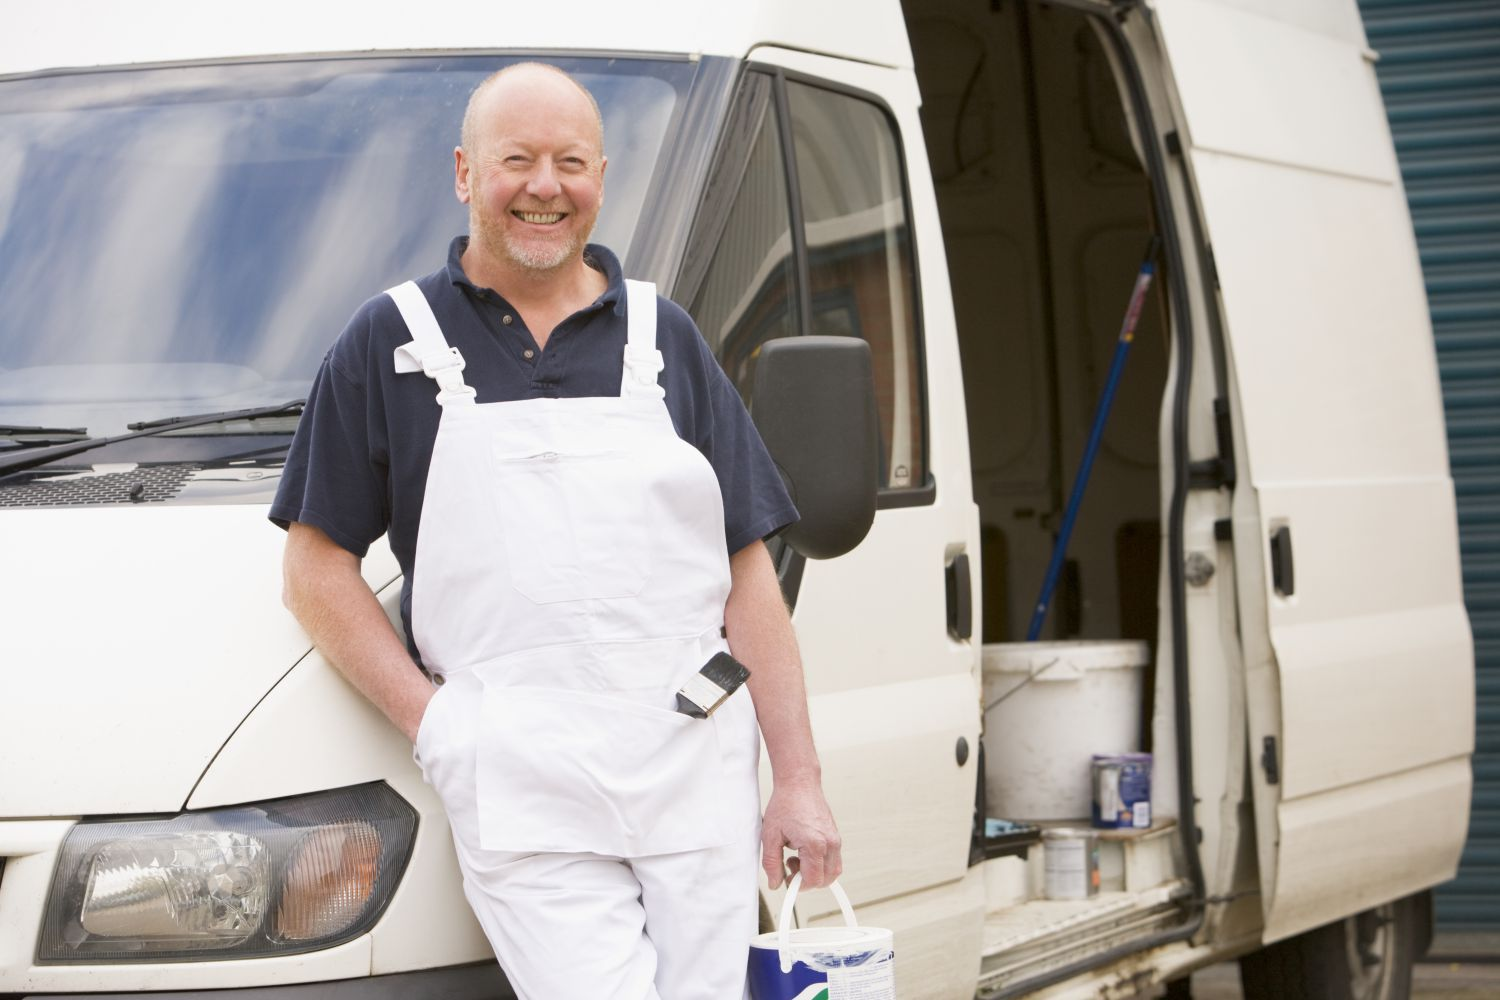 One of our plumbing supplies experts in Edgewood, KY